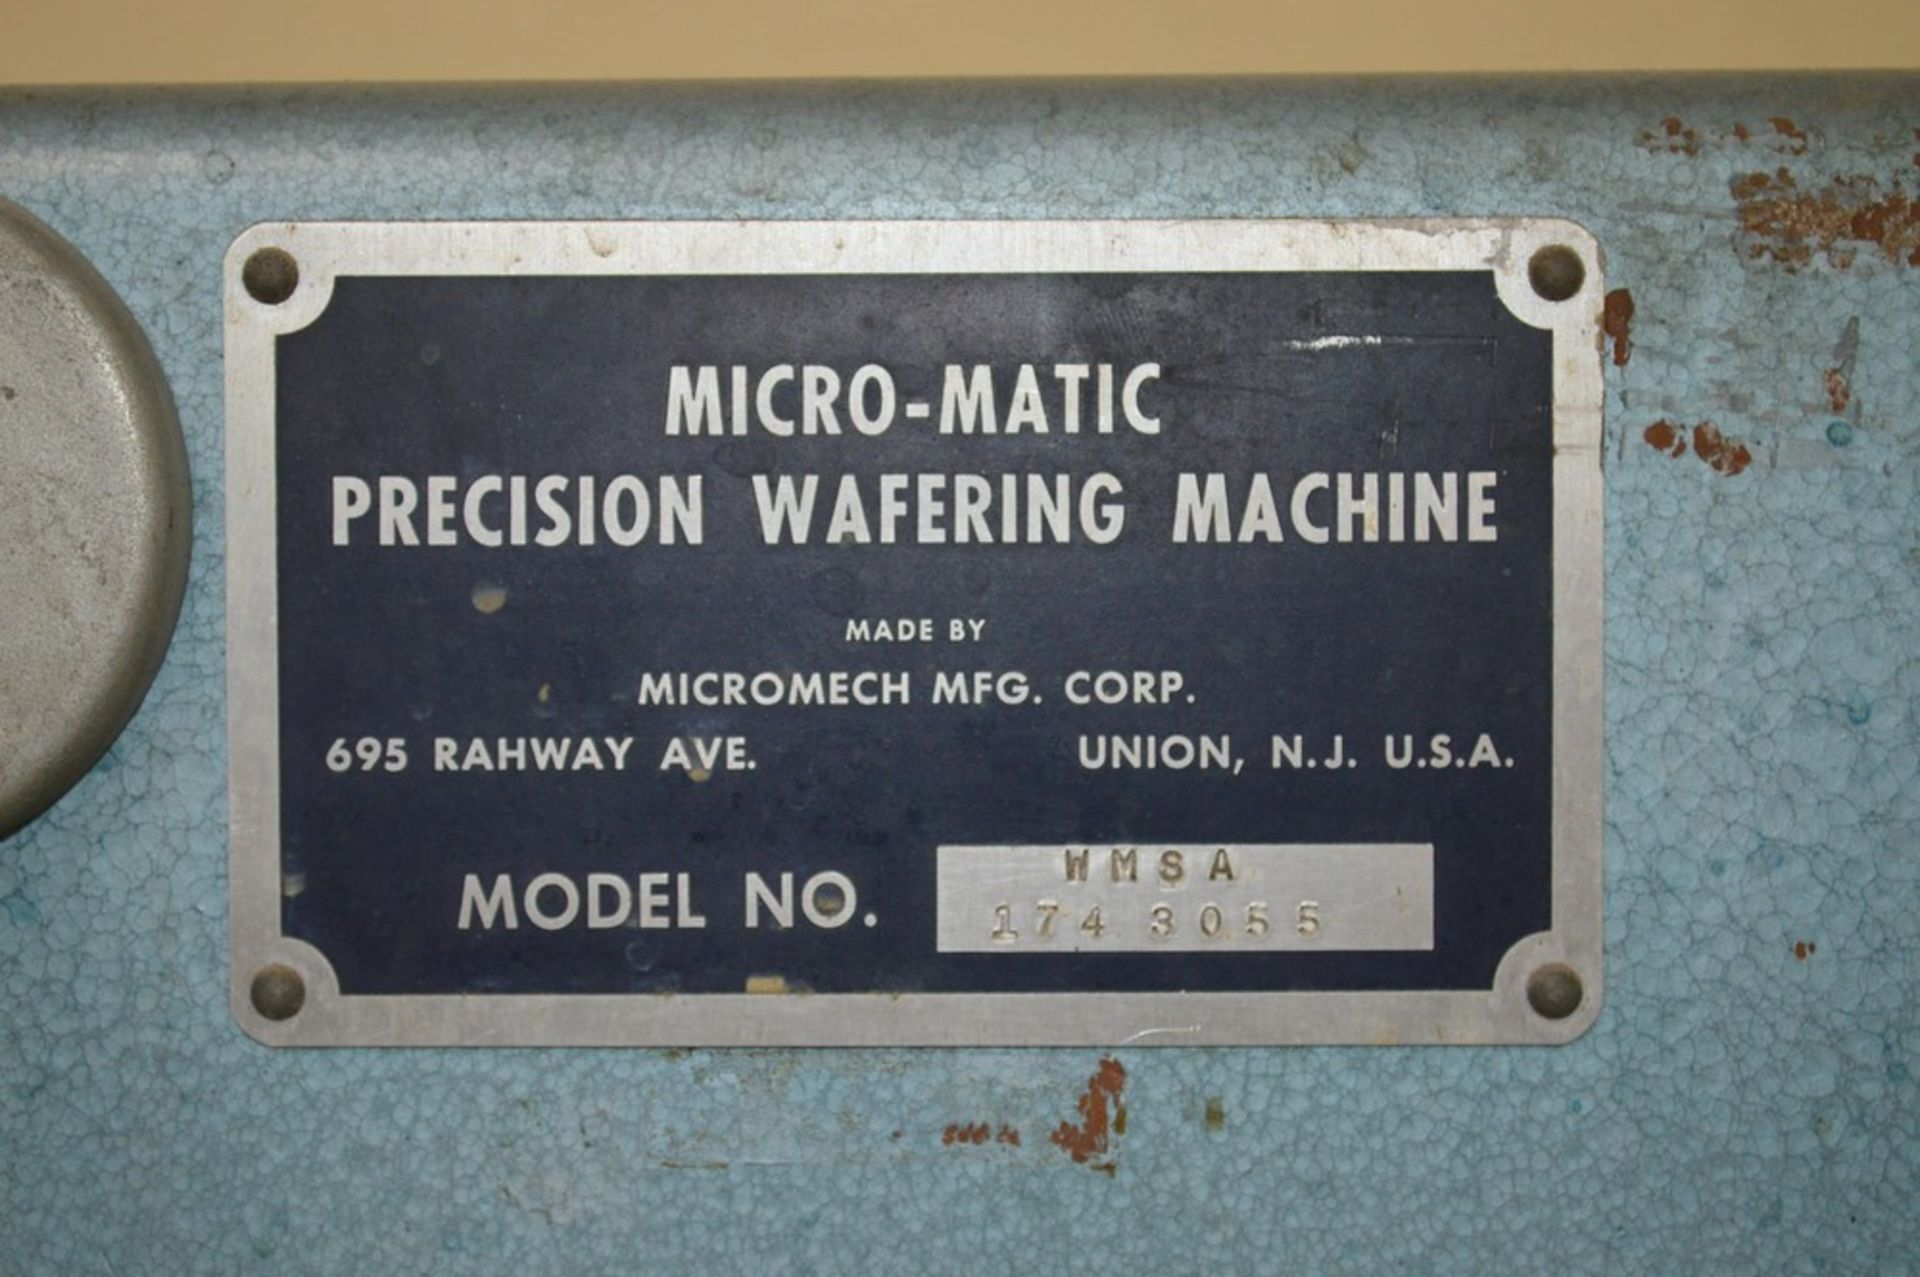 Micromatic Precision Diamond Wafering Saw model WMSA 1743055, spare parts, table and spindle speed - Image 2 of 9